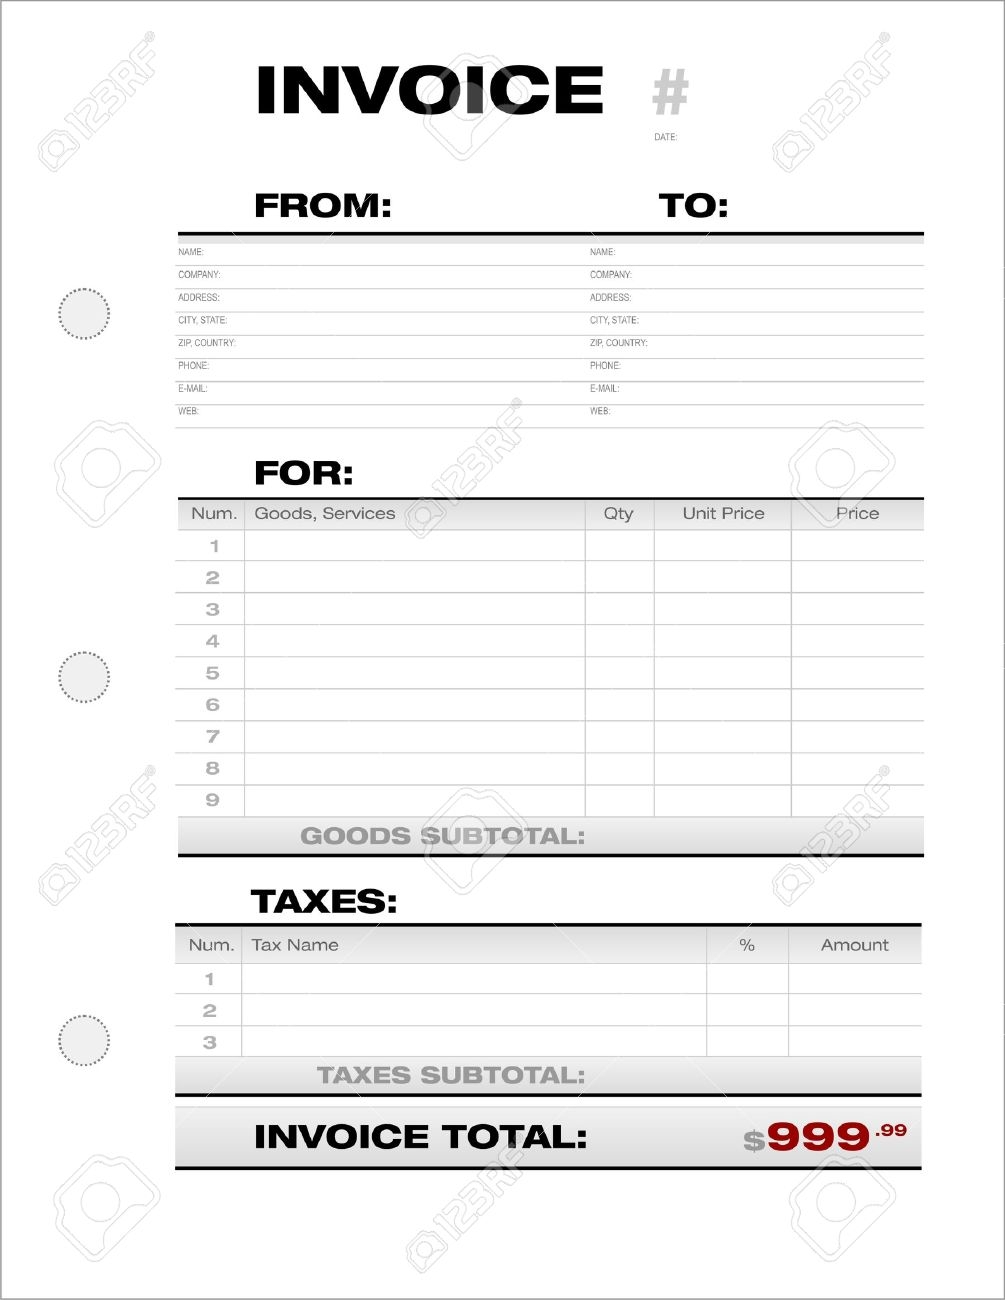 business document invoice template with taxes section royalty free invoice document template